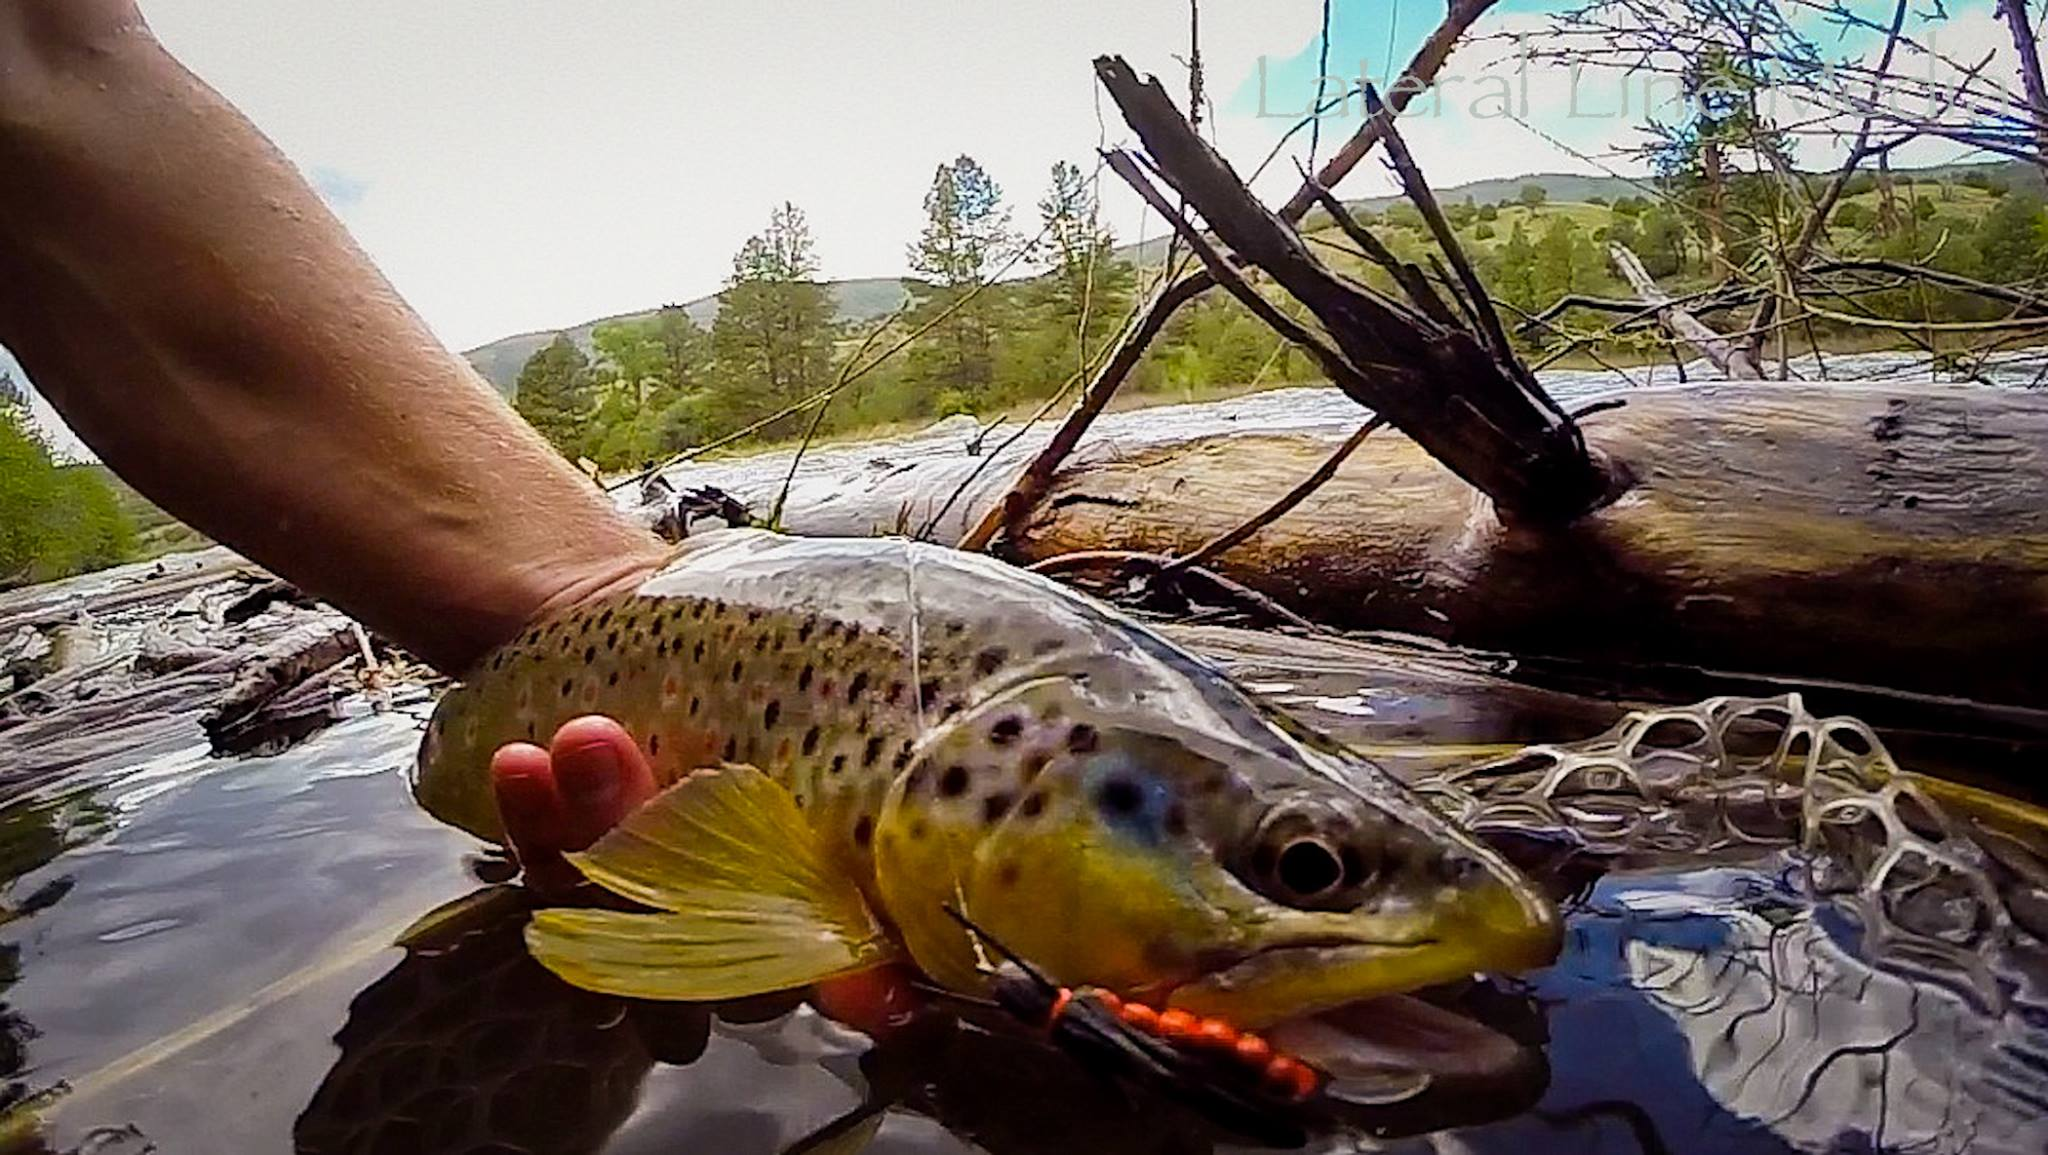 Colorado River Brown Trout hooked on a Salmon Fly